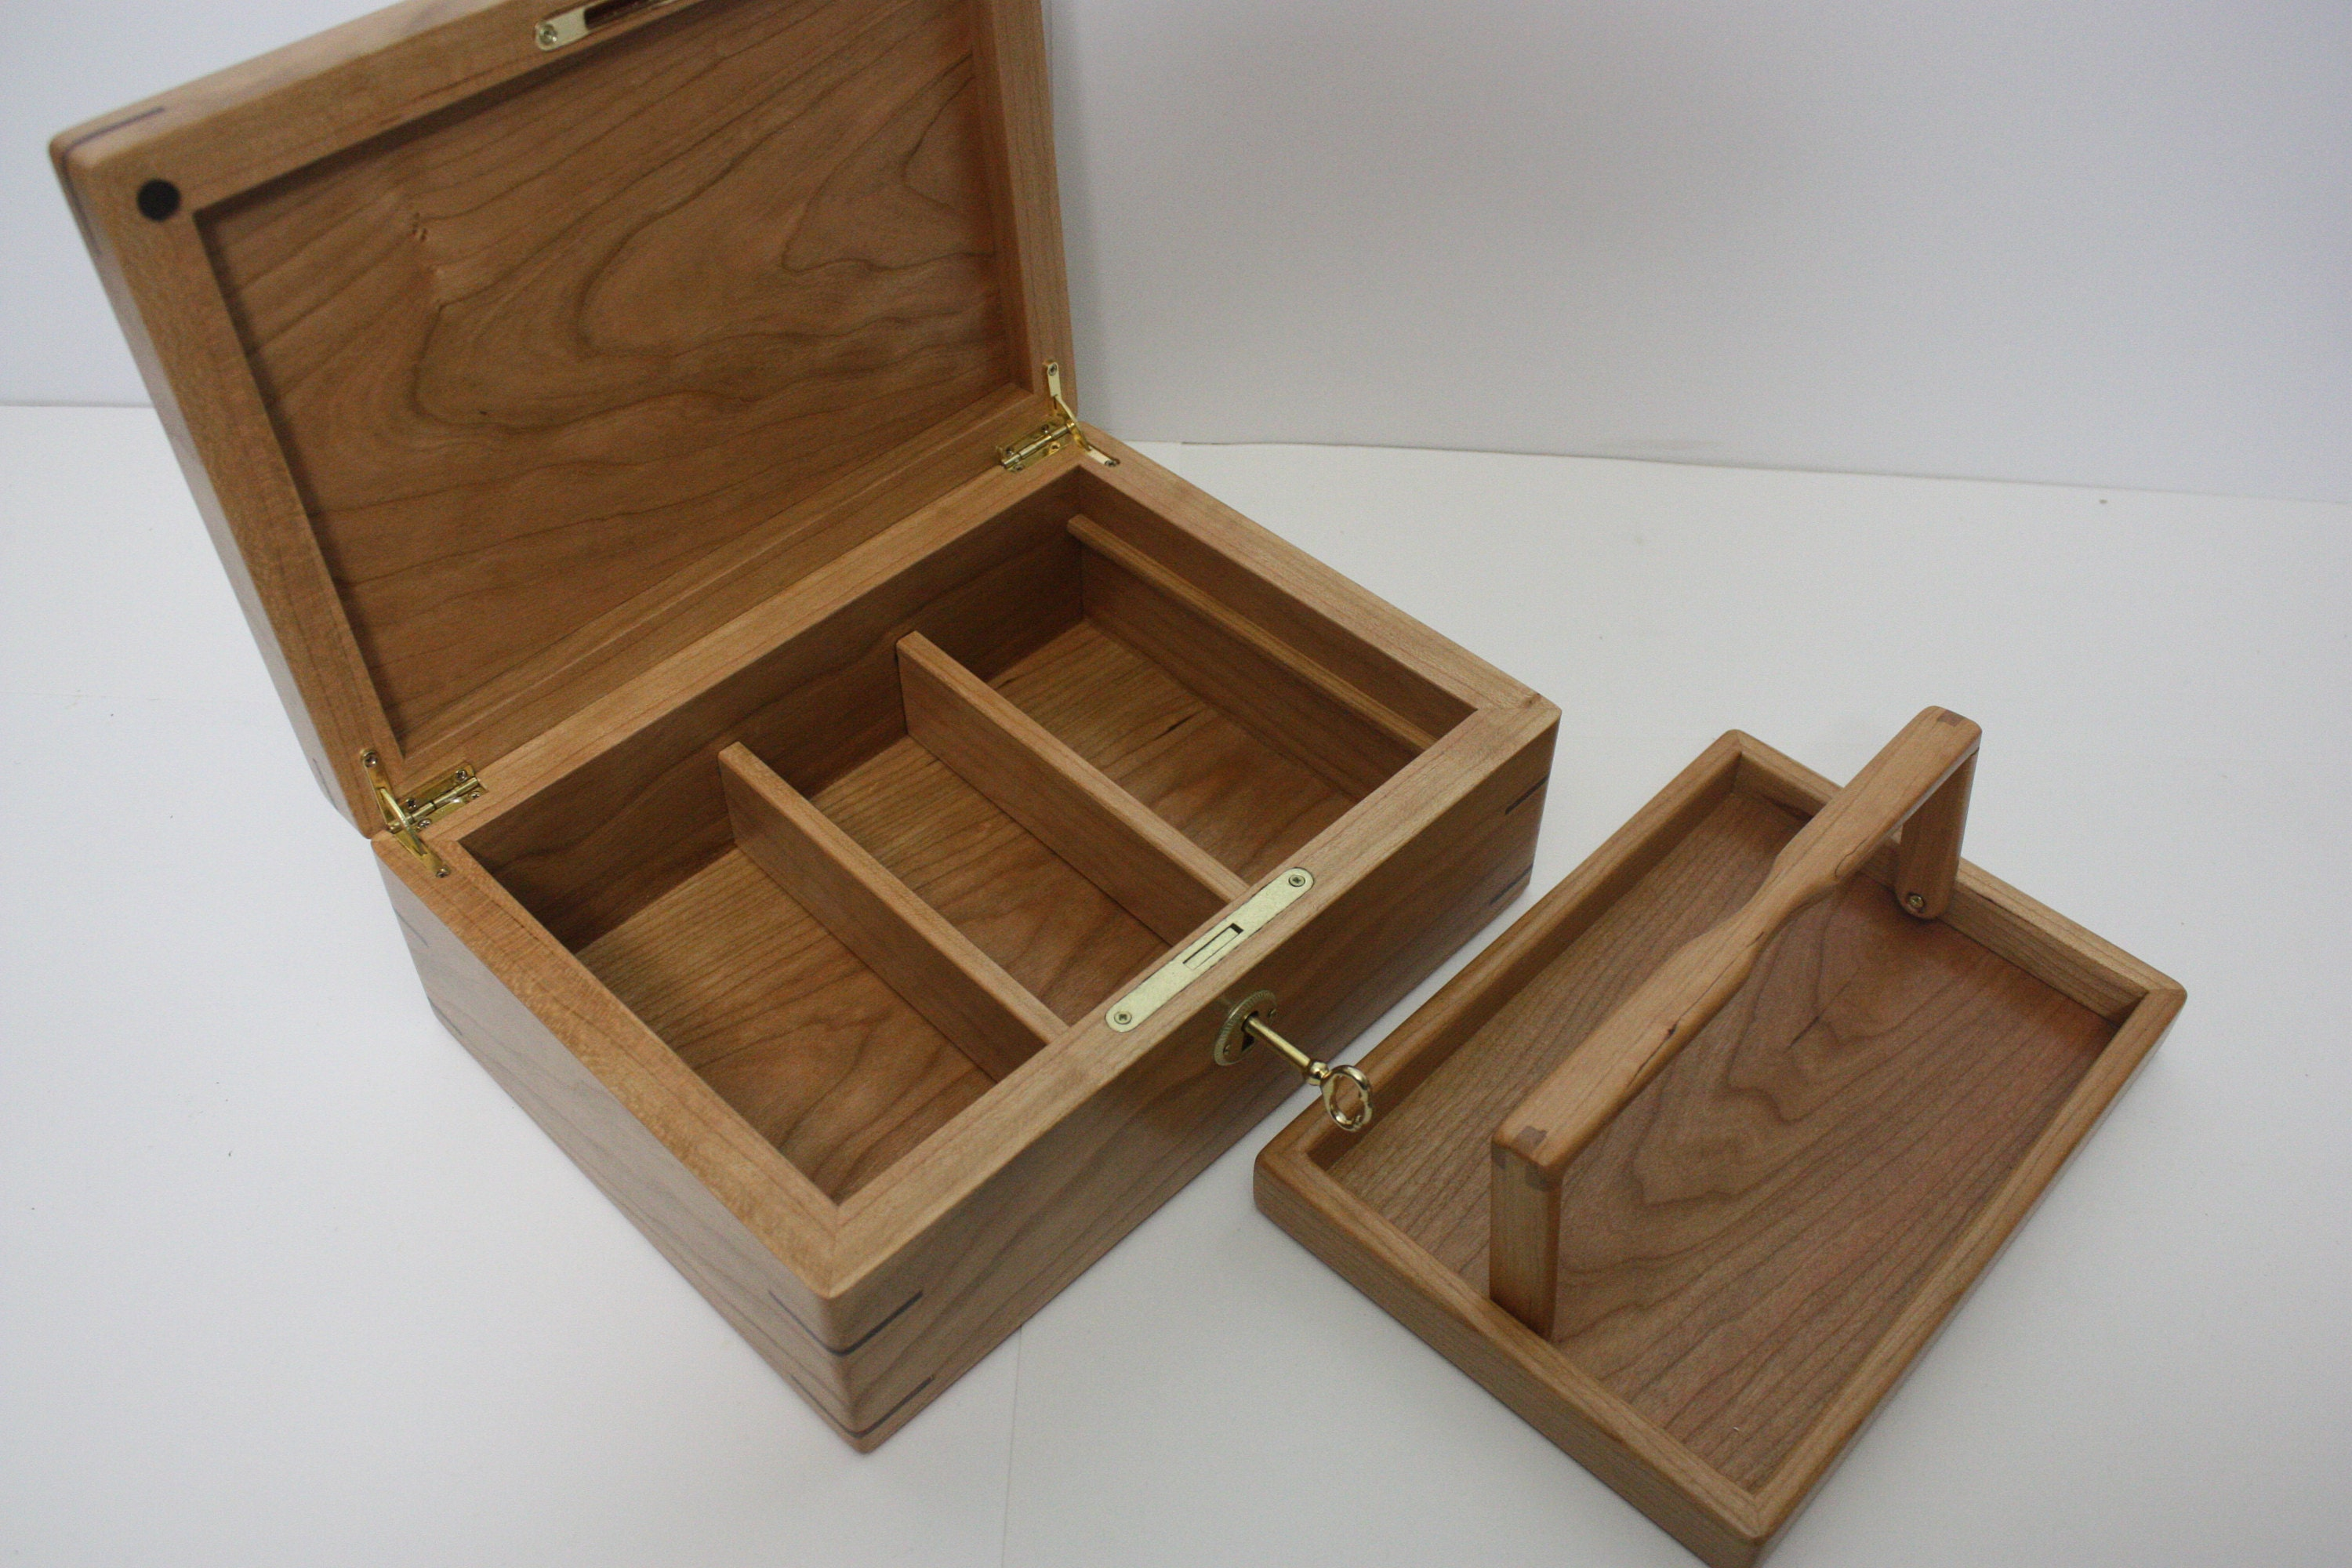 Cherry Wood Box with Lift Out Tray and Adjustable Dividers